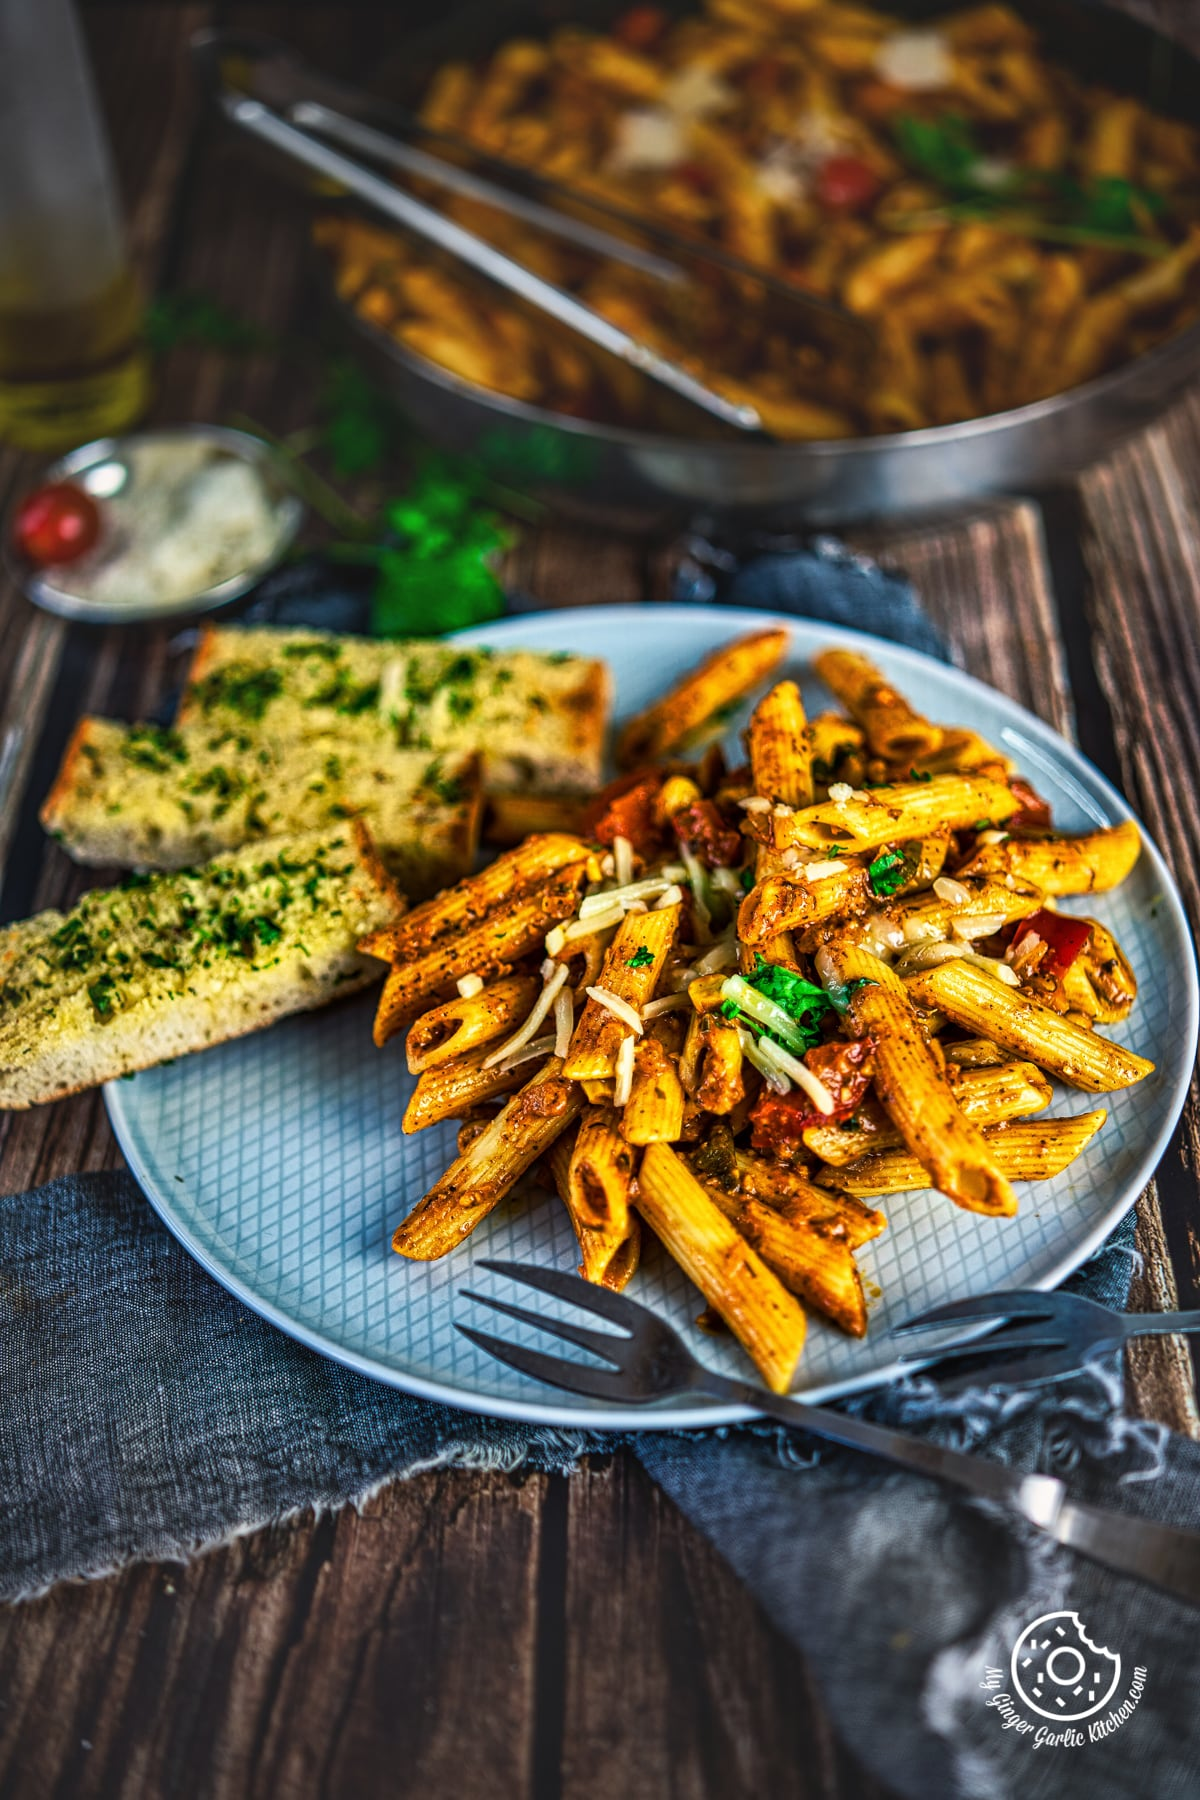 masala pasta served in a grey plate along with garlic bread sticks